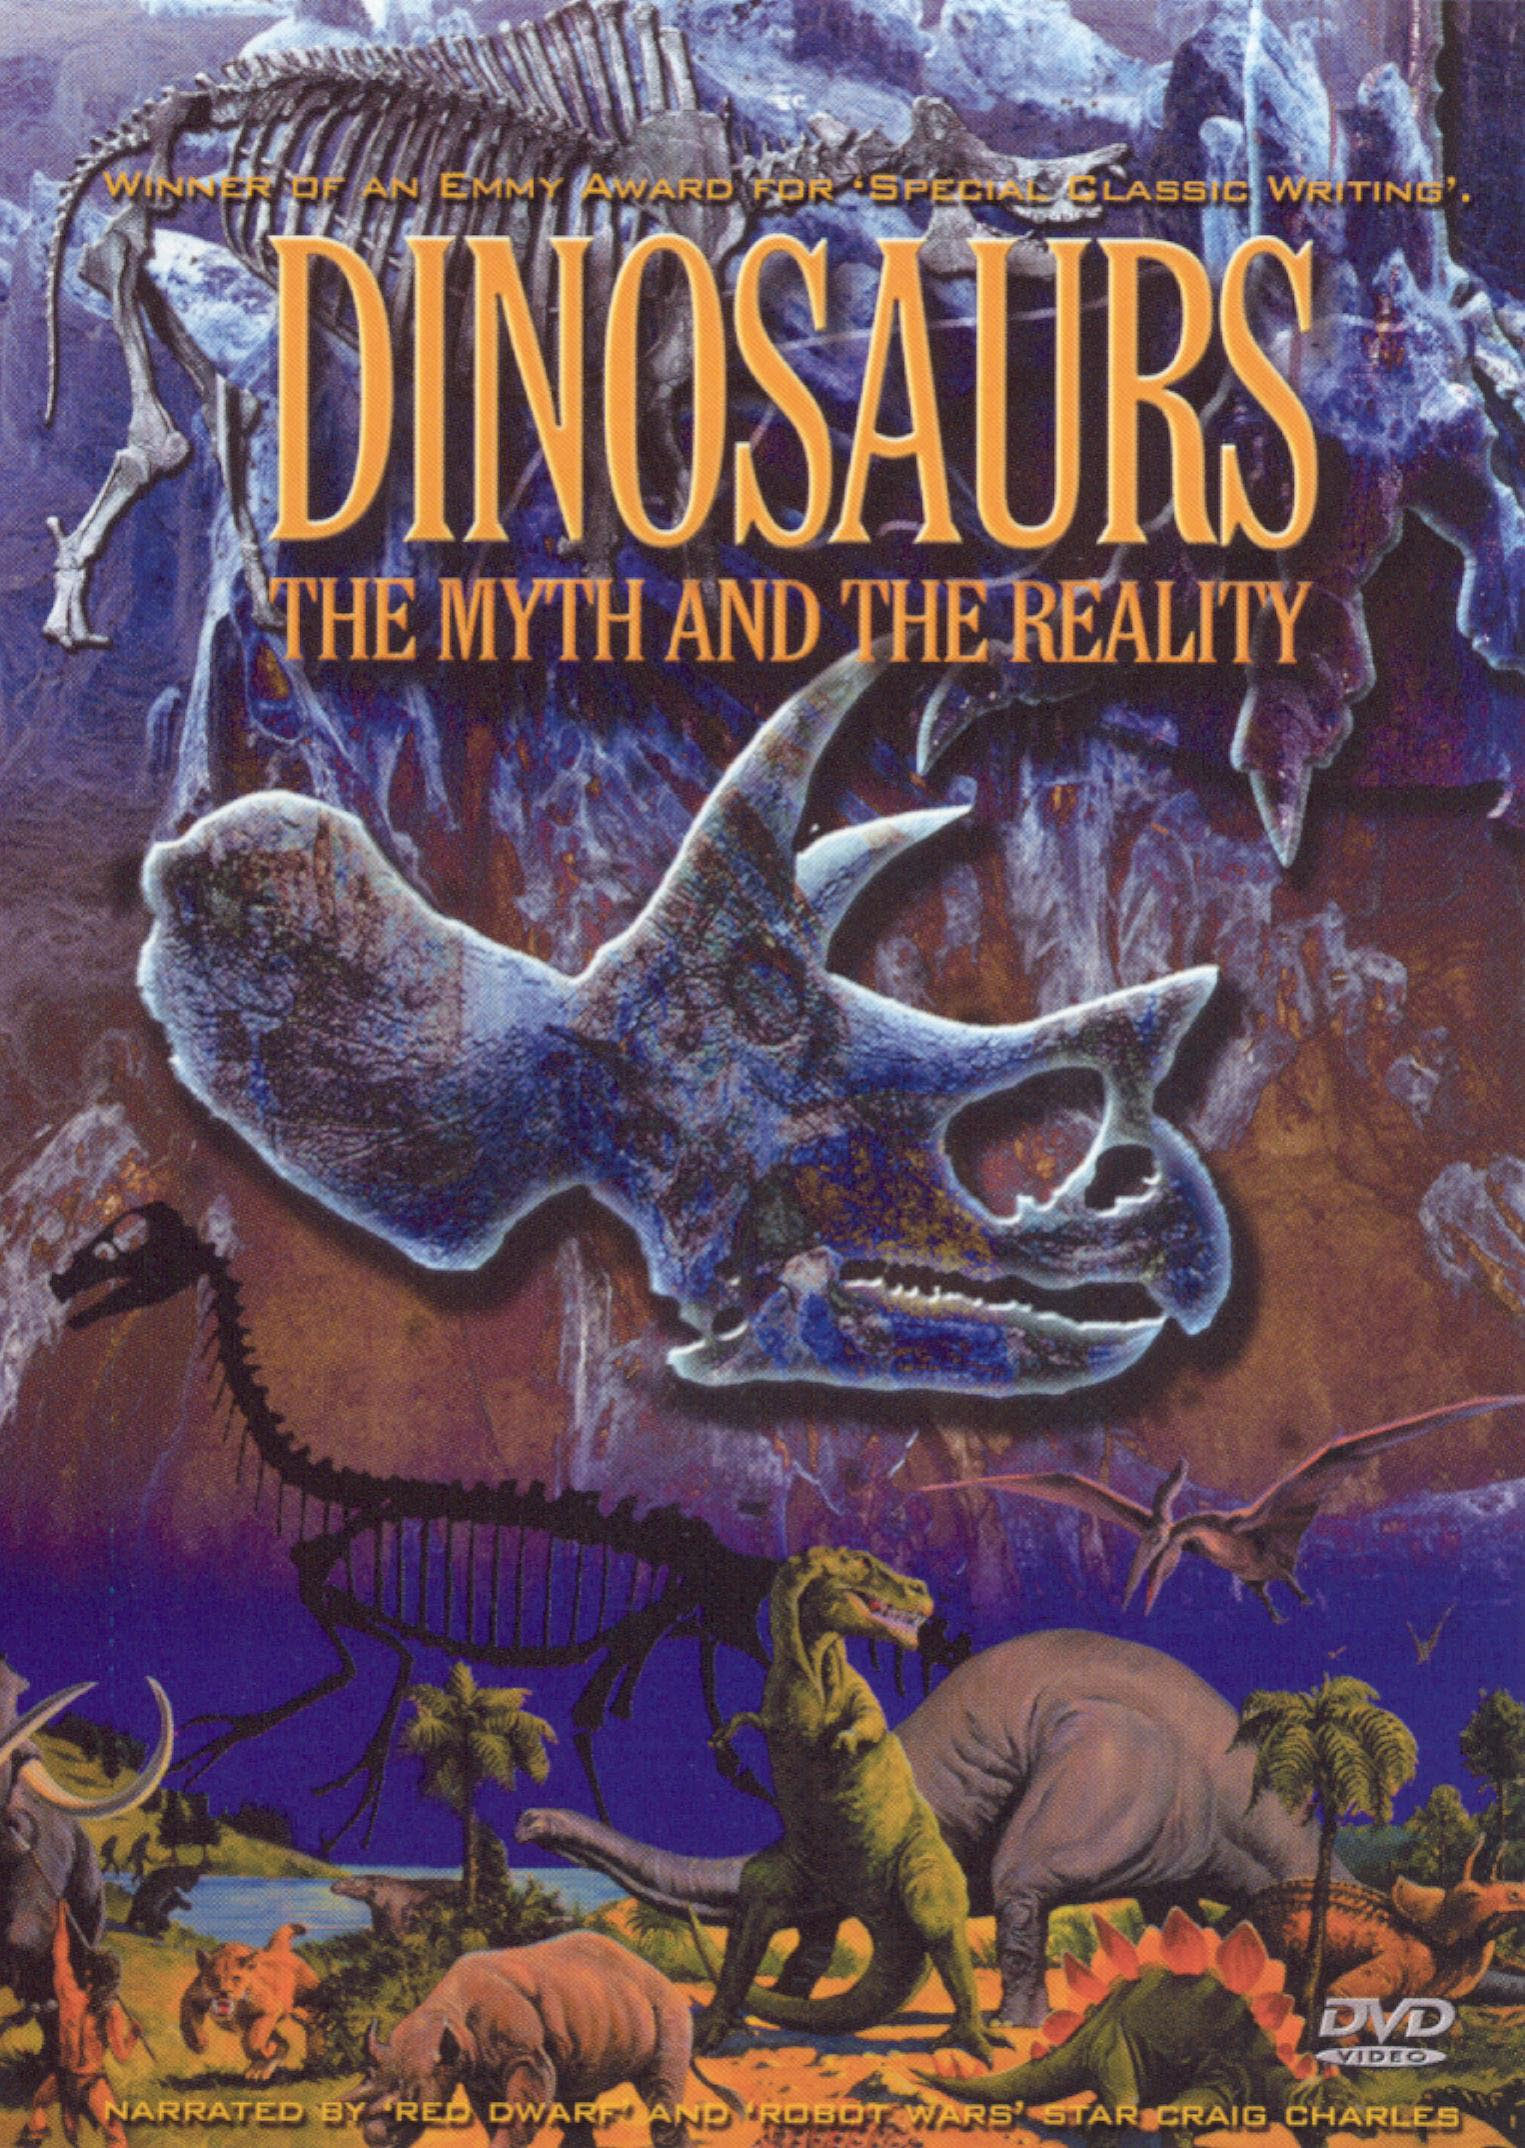 Dinosaurs: The Myth and the Reality